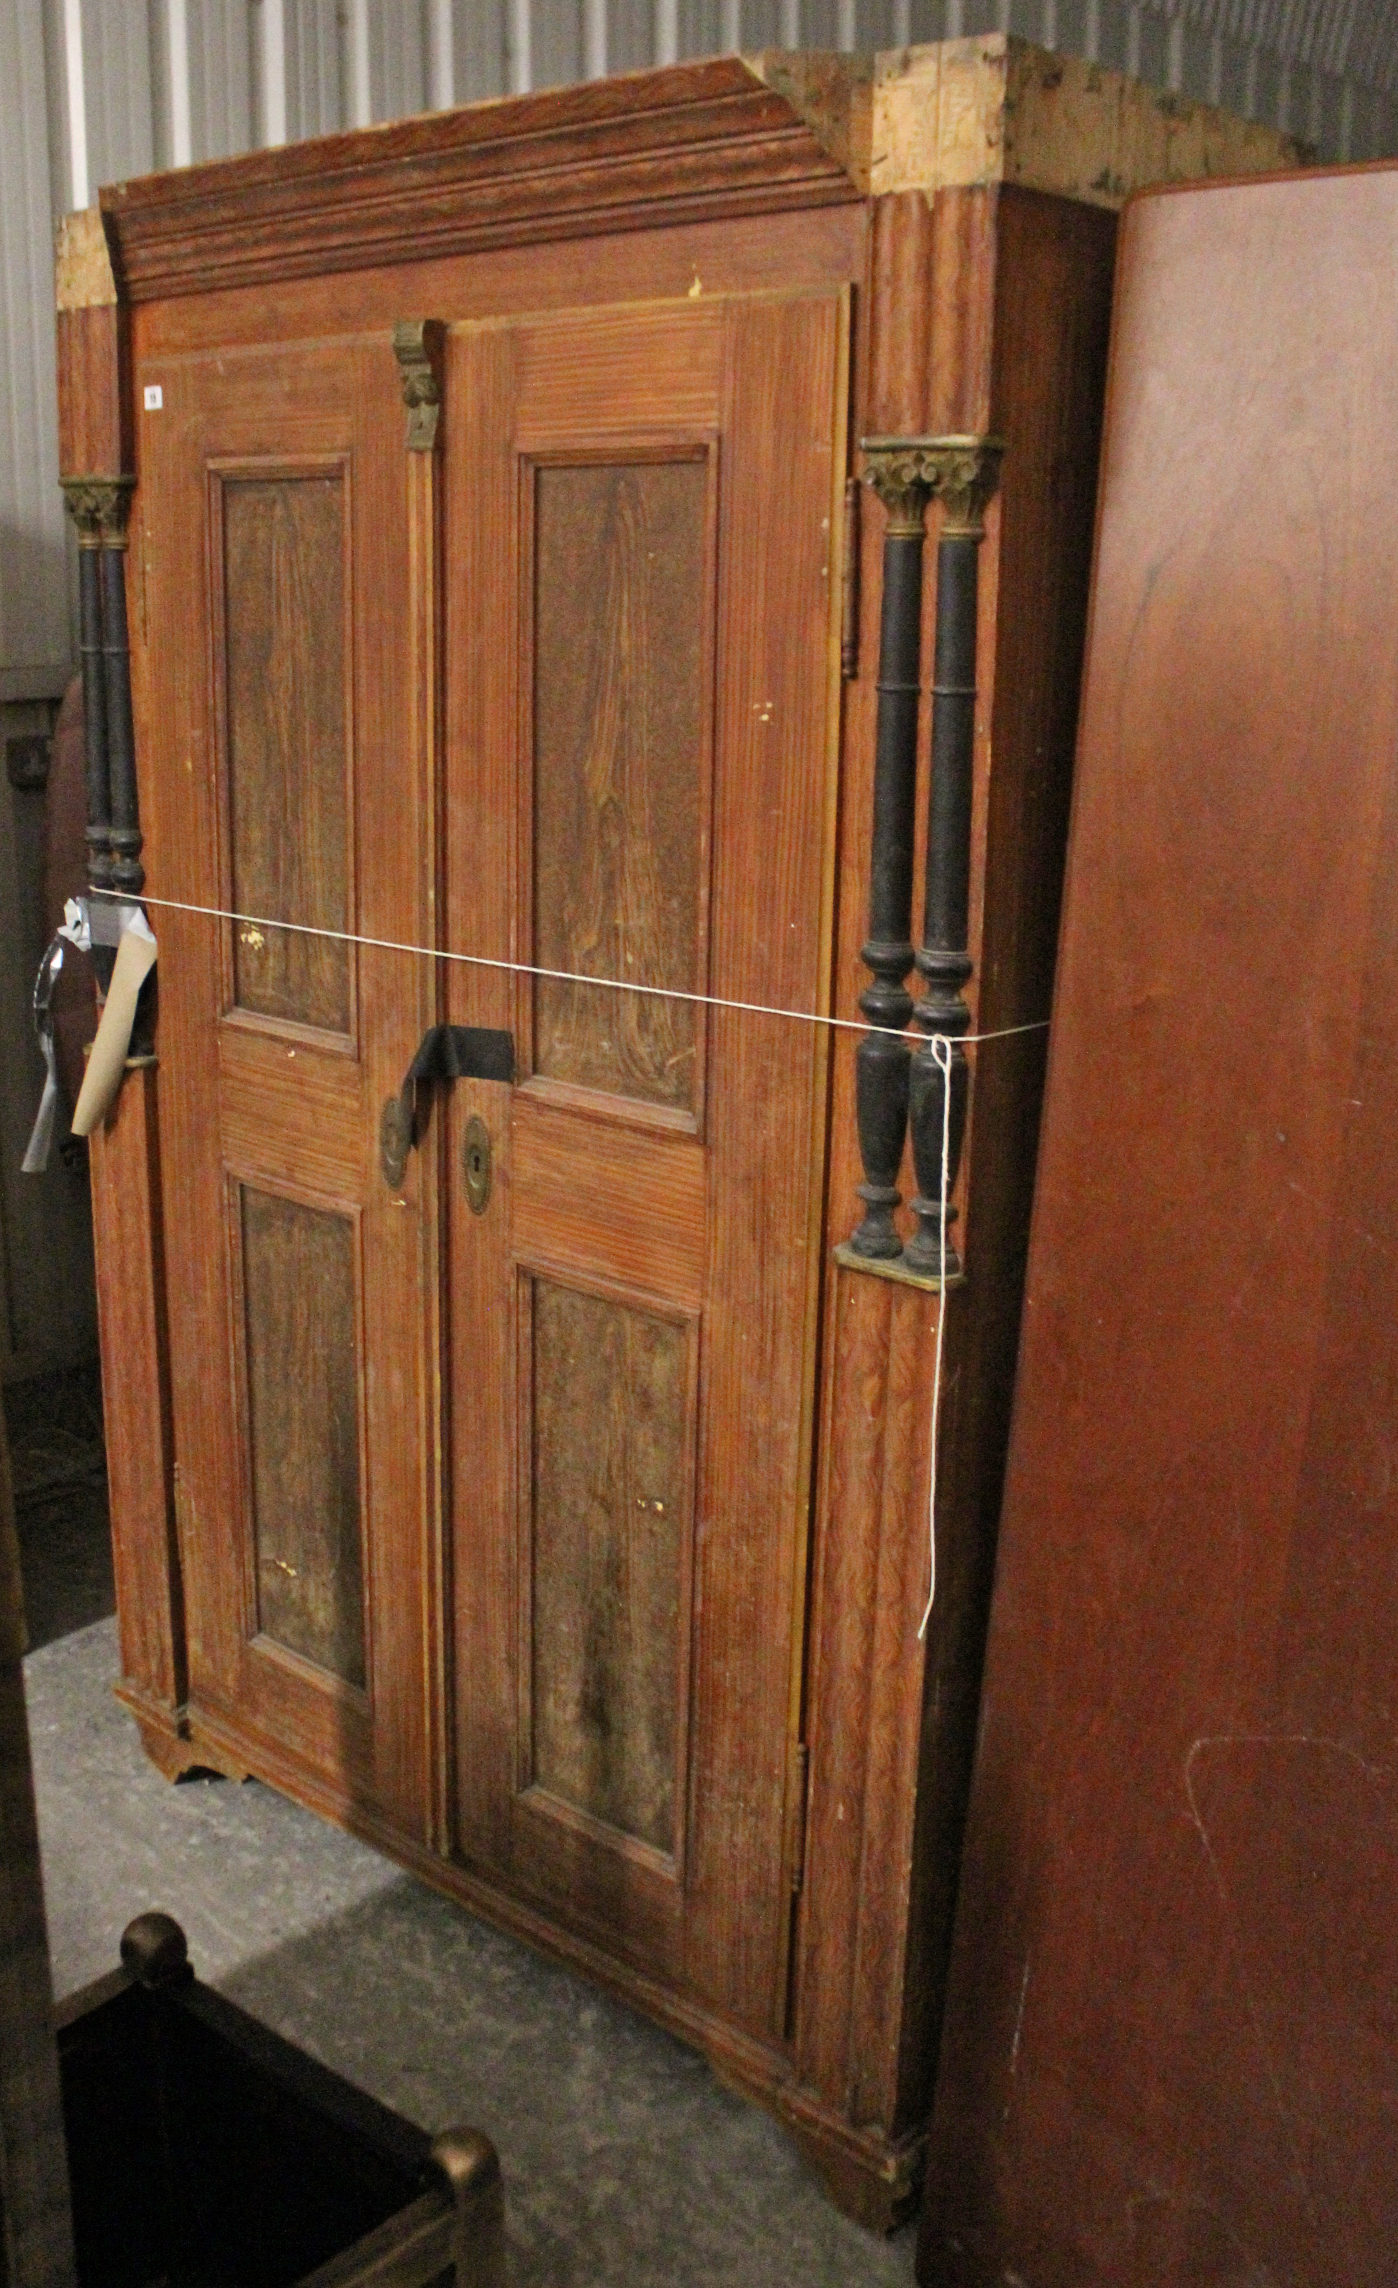 Lot 15 - A continental-style grained pine wardrobe enclosed by pair of panel doors, with half turned